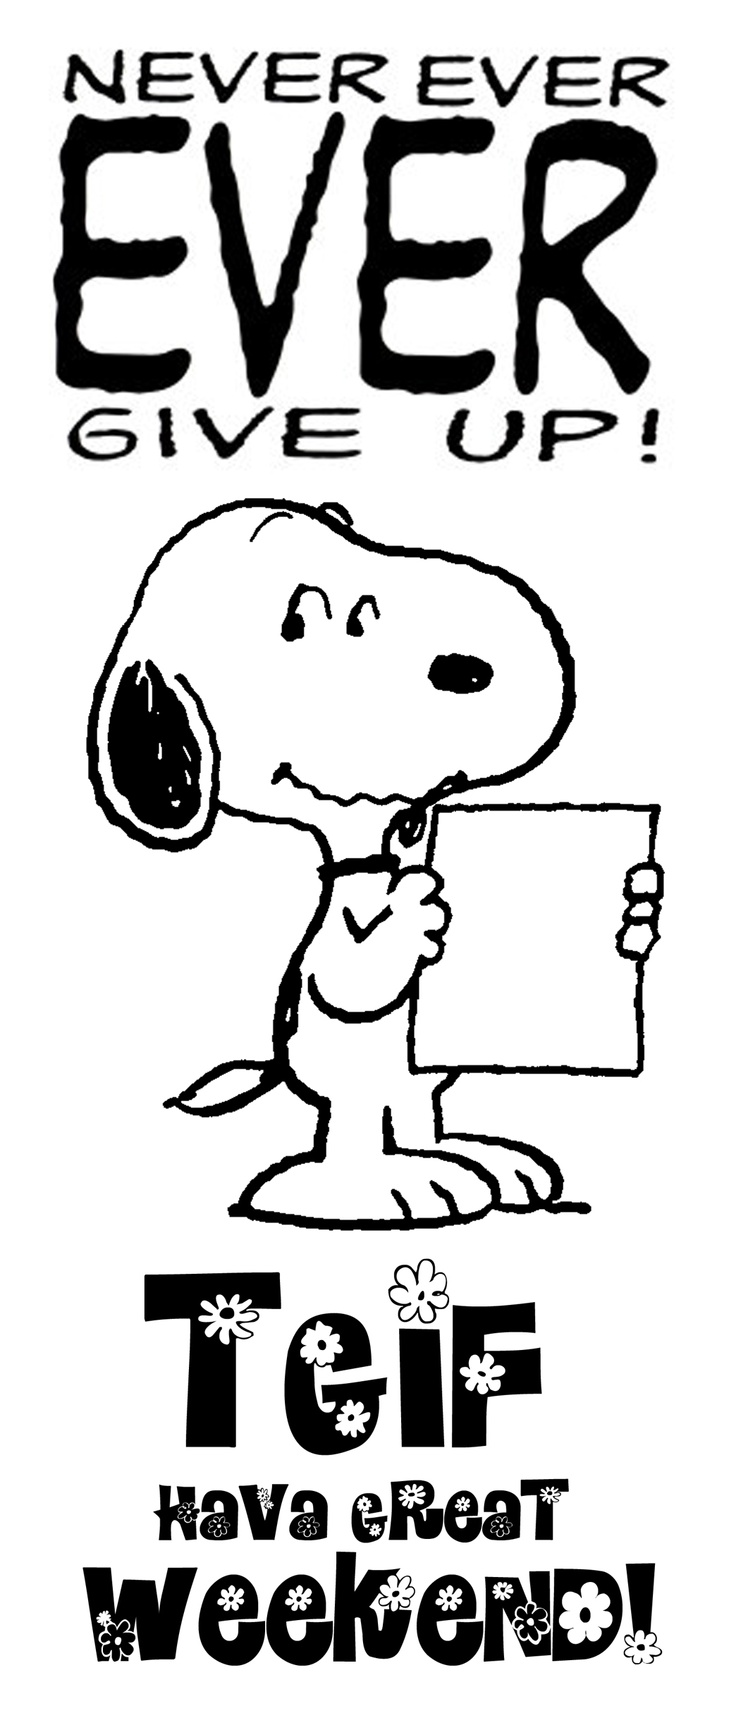 296 best friday images on pinterest | peanuts snoopy, cartoon and